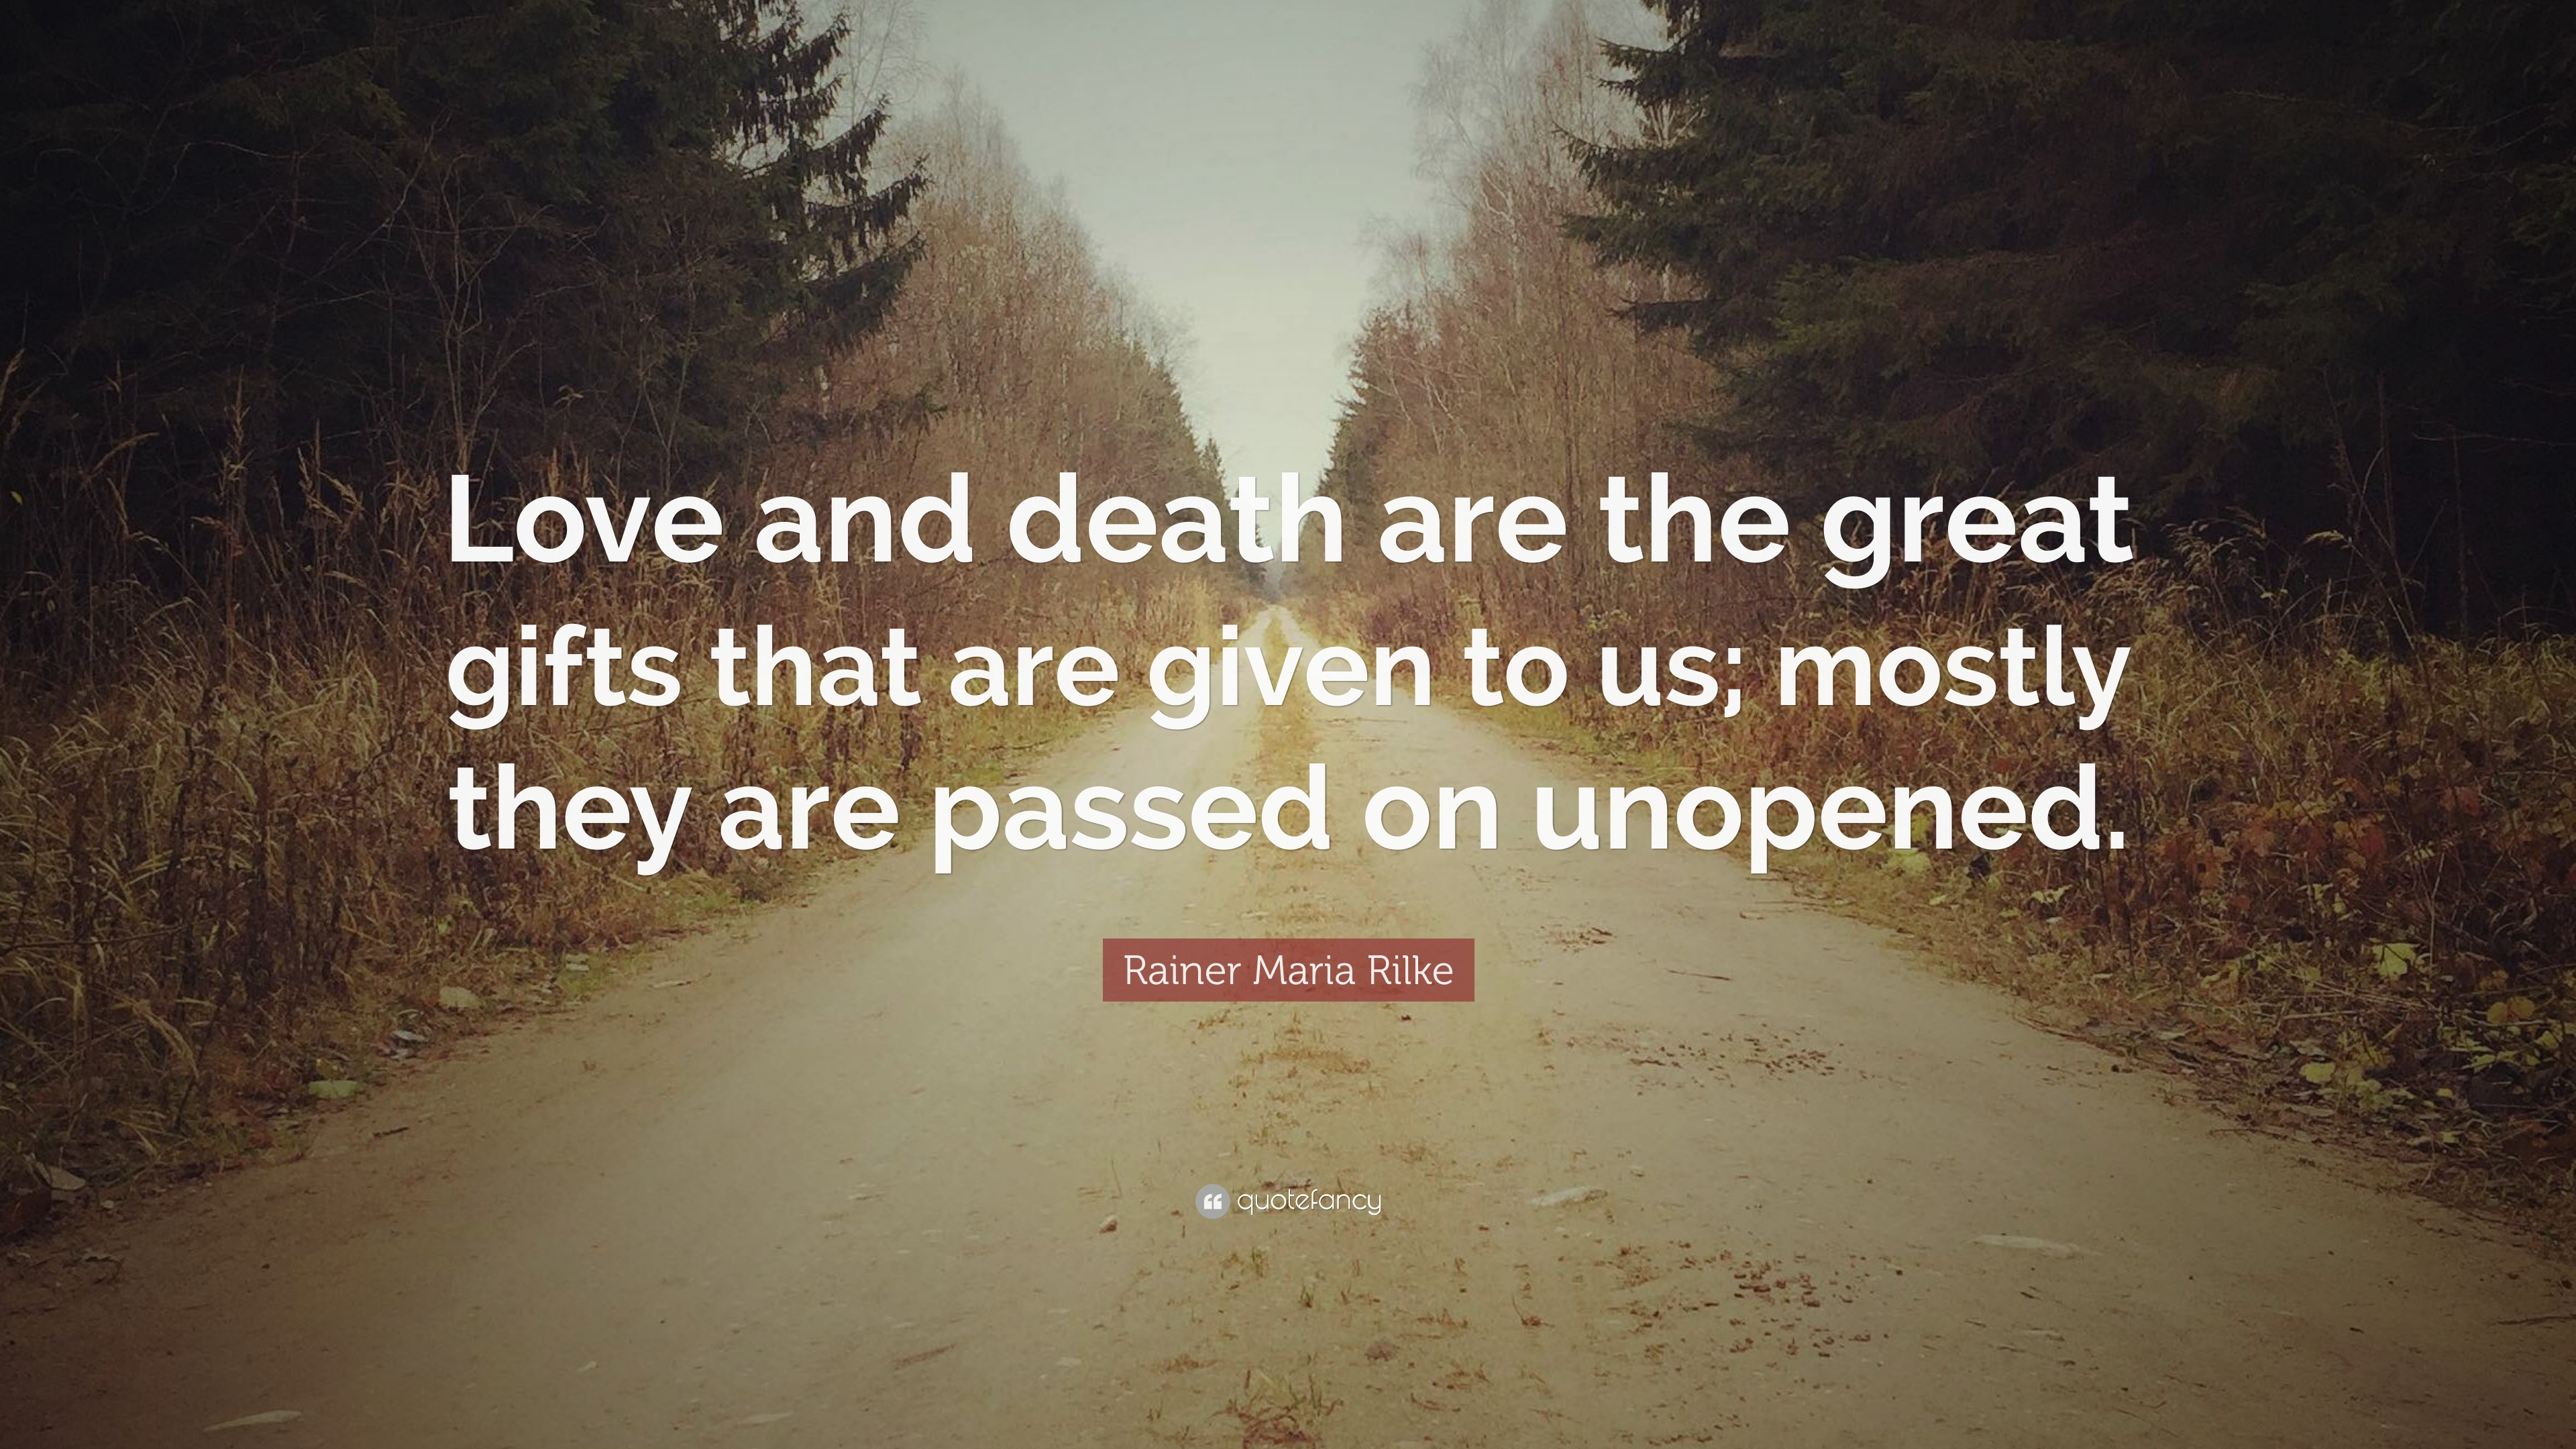 Nice Rainer Maria Rilke Quote: U201cLove And Death Are The Great Gifts That Are Given